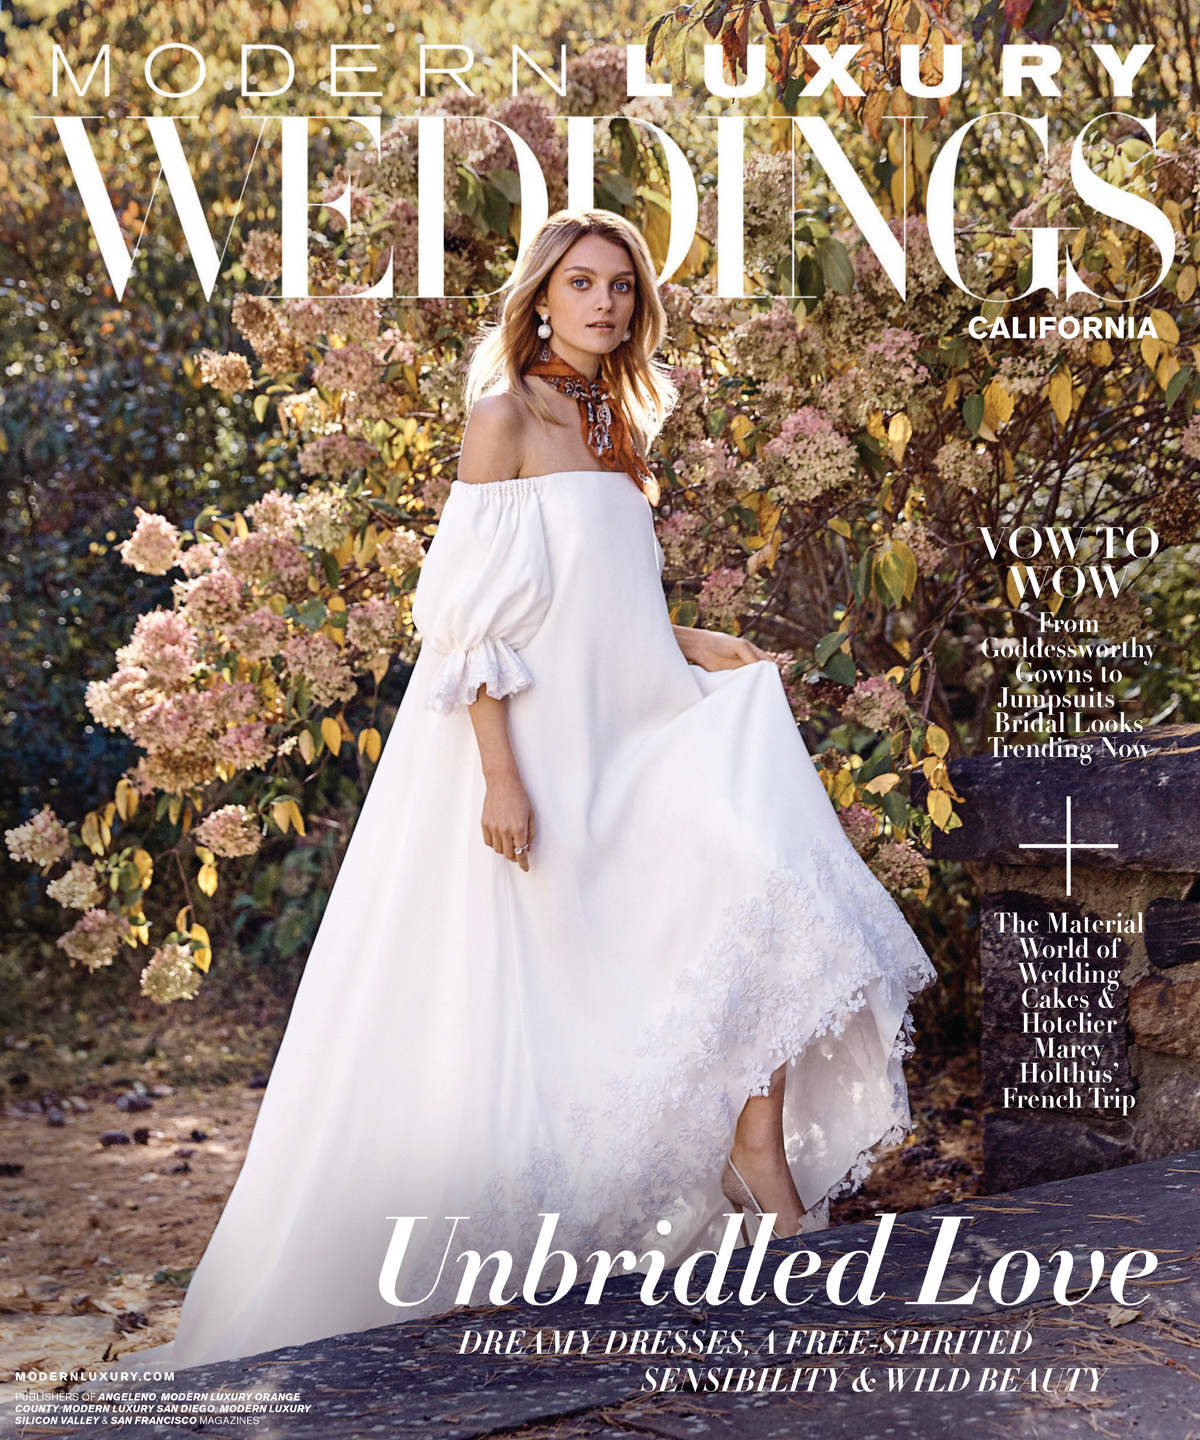 Modern Luxury Weddings Spring/Summer 2018